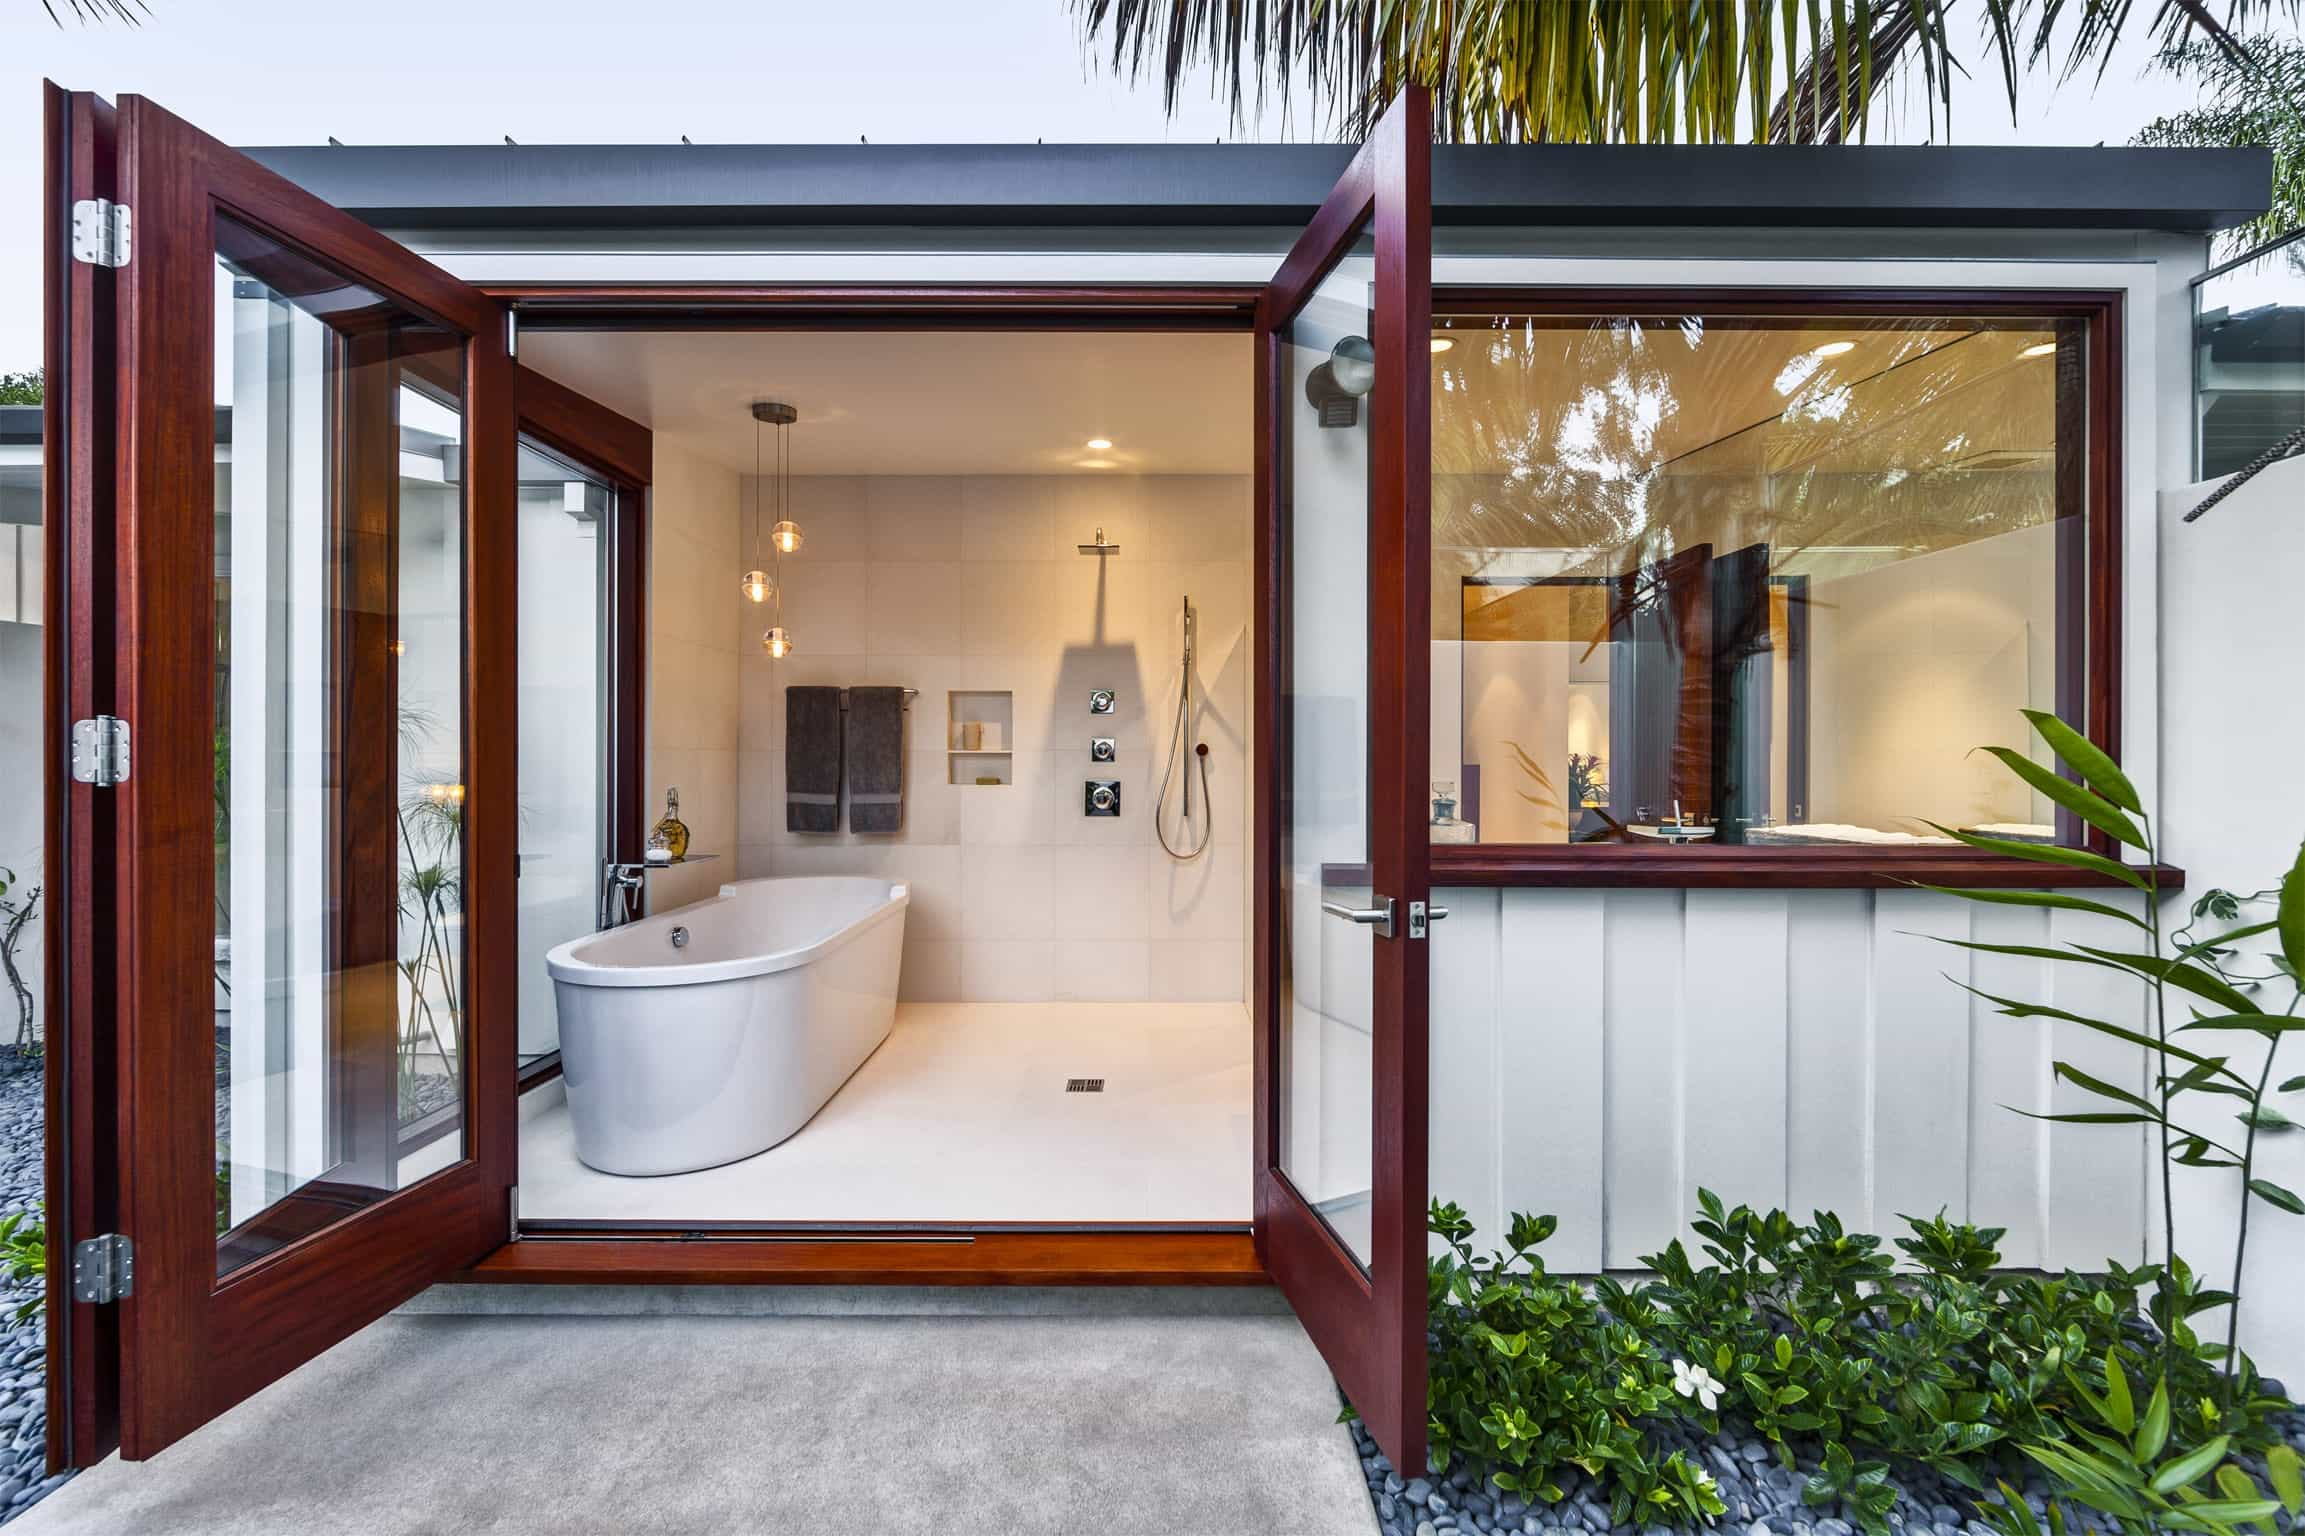 Spacious Spa And Bathroom Combination With Patio Access (Image 15 of 16)